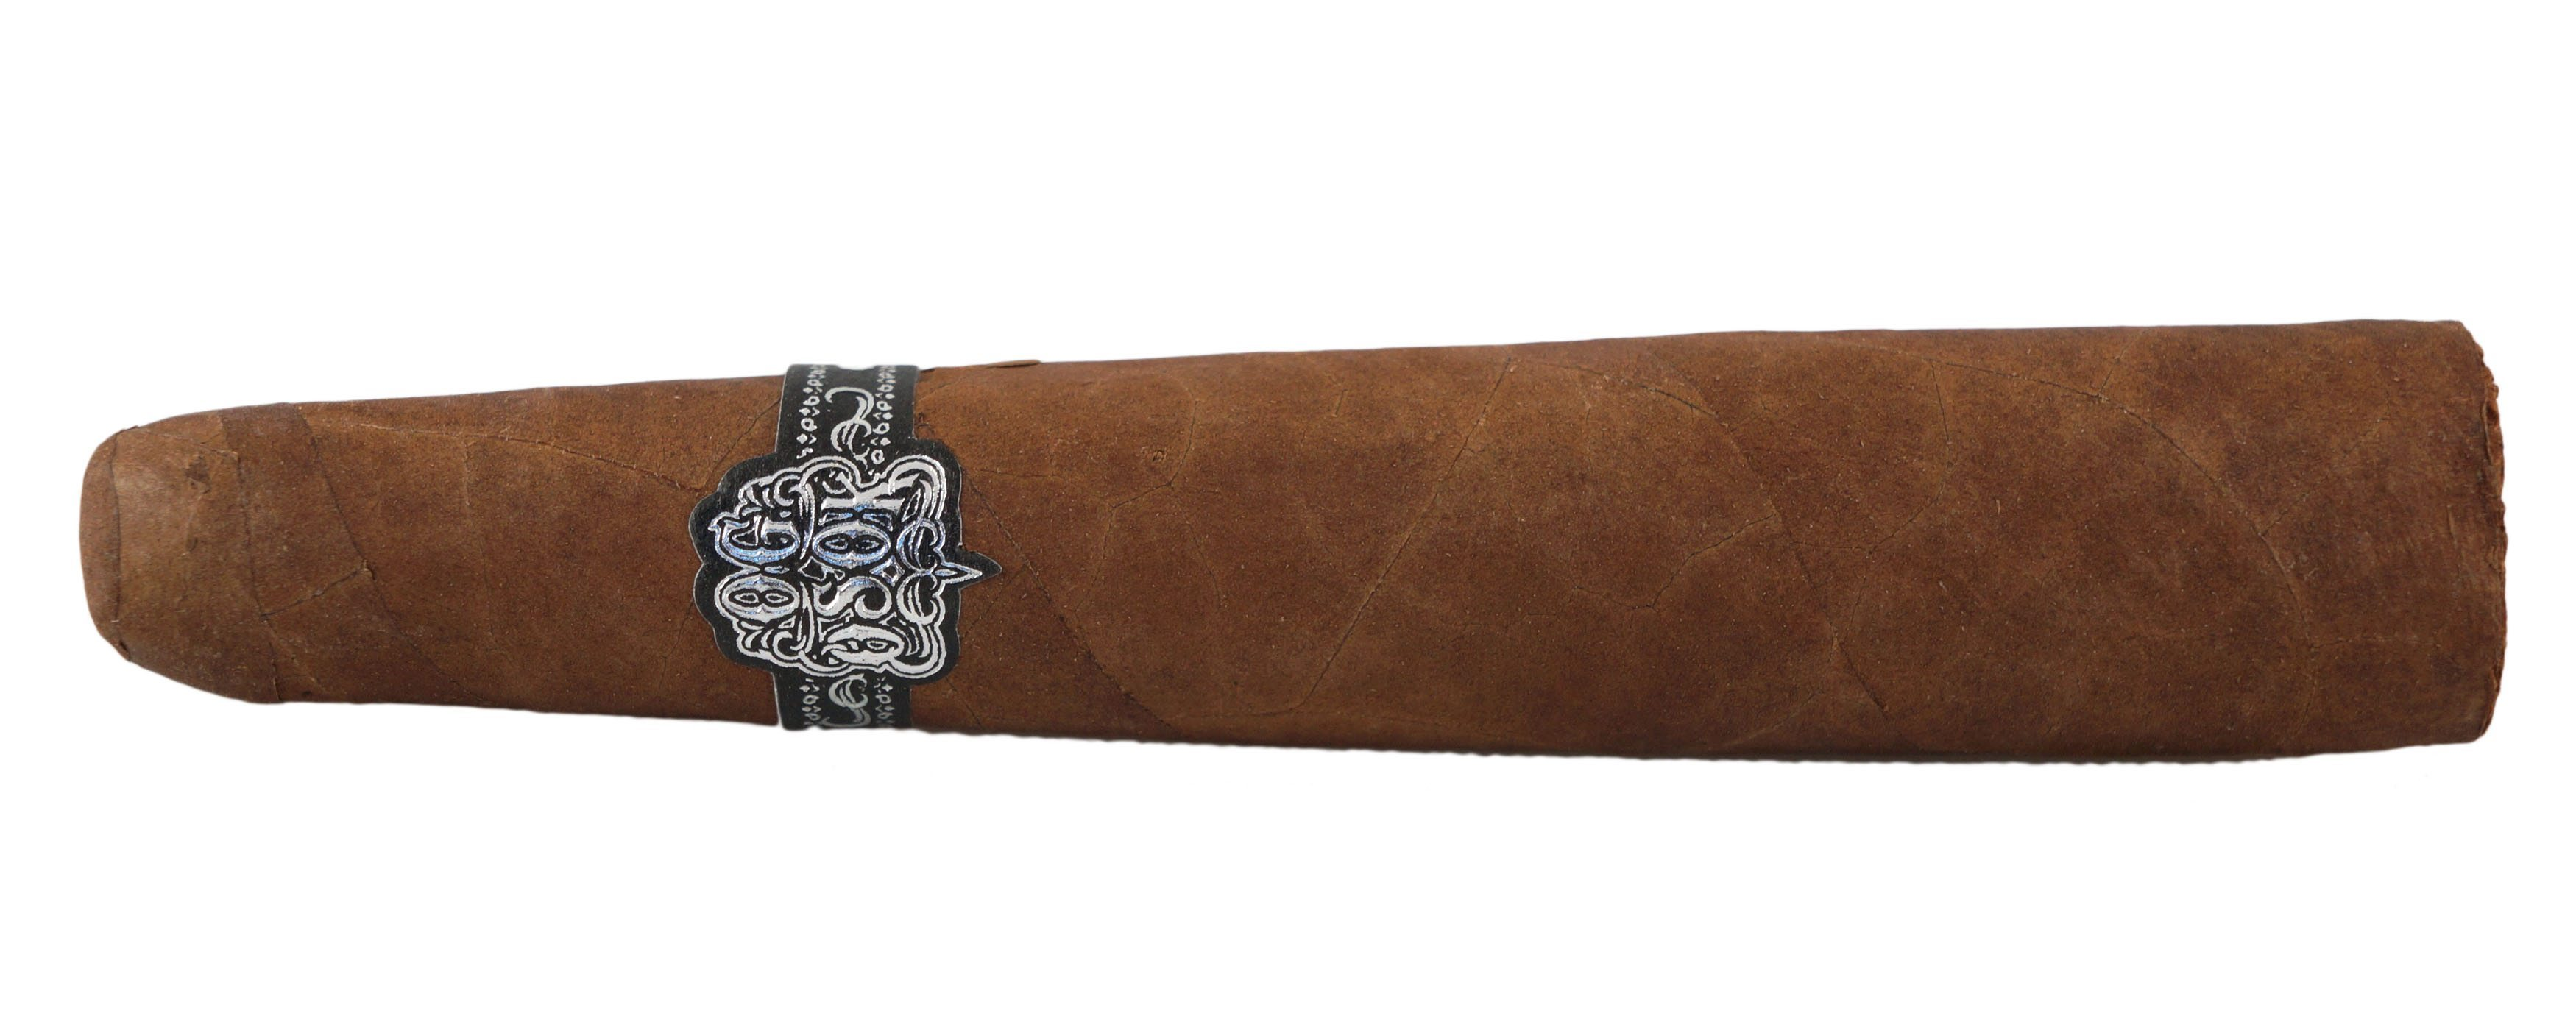 Blind Cigar Review: Edgar Hoill | OG OSOK Chakal